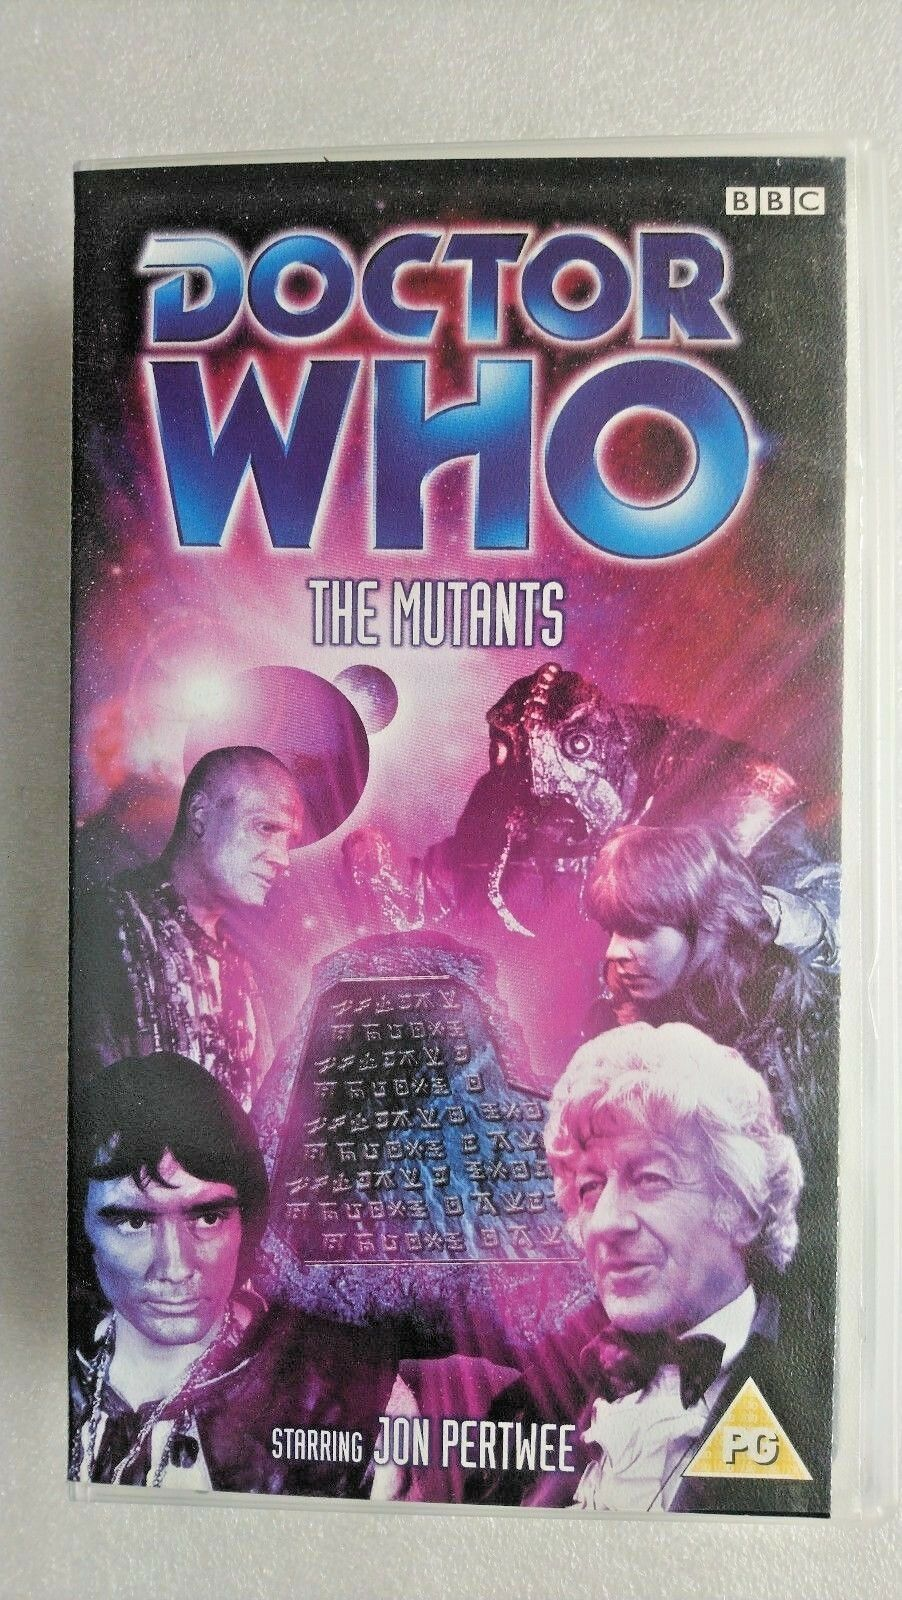 Doctor Who - The Mutants (VHS, 2003) - Jon Pertwee -TAPE NEW and SEALED